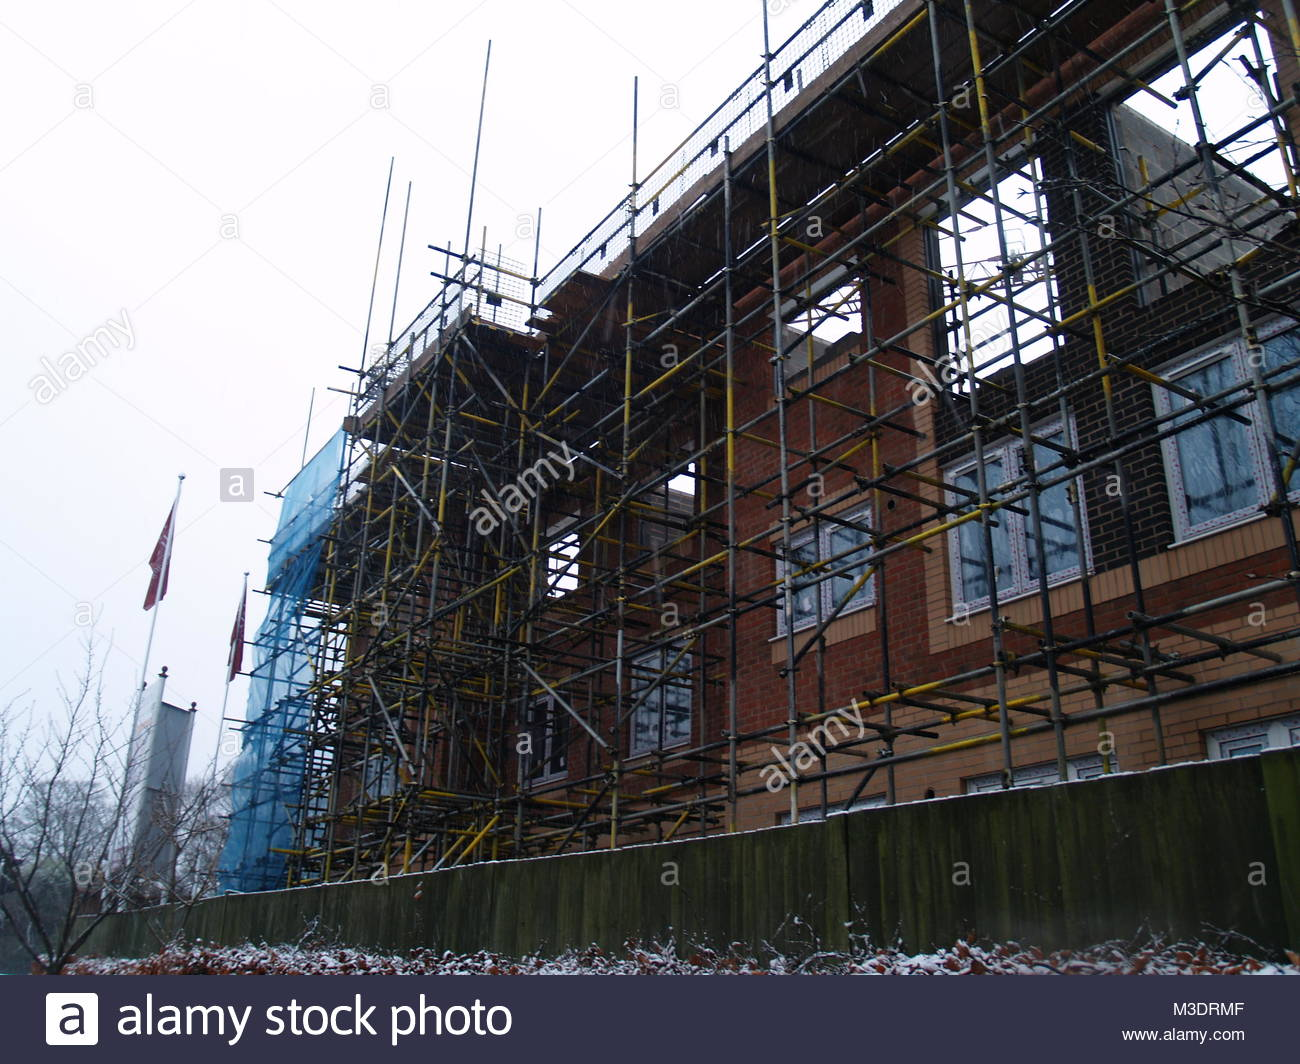 The Building Work On The New Care Home In The Centre Of Aldridge - Aldridge, West Midlands - Stock Image